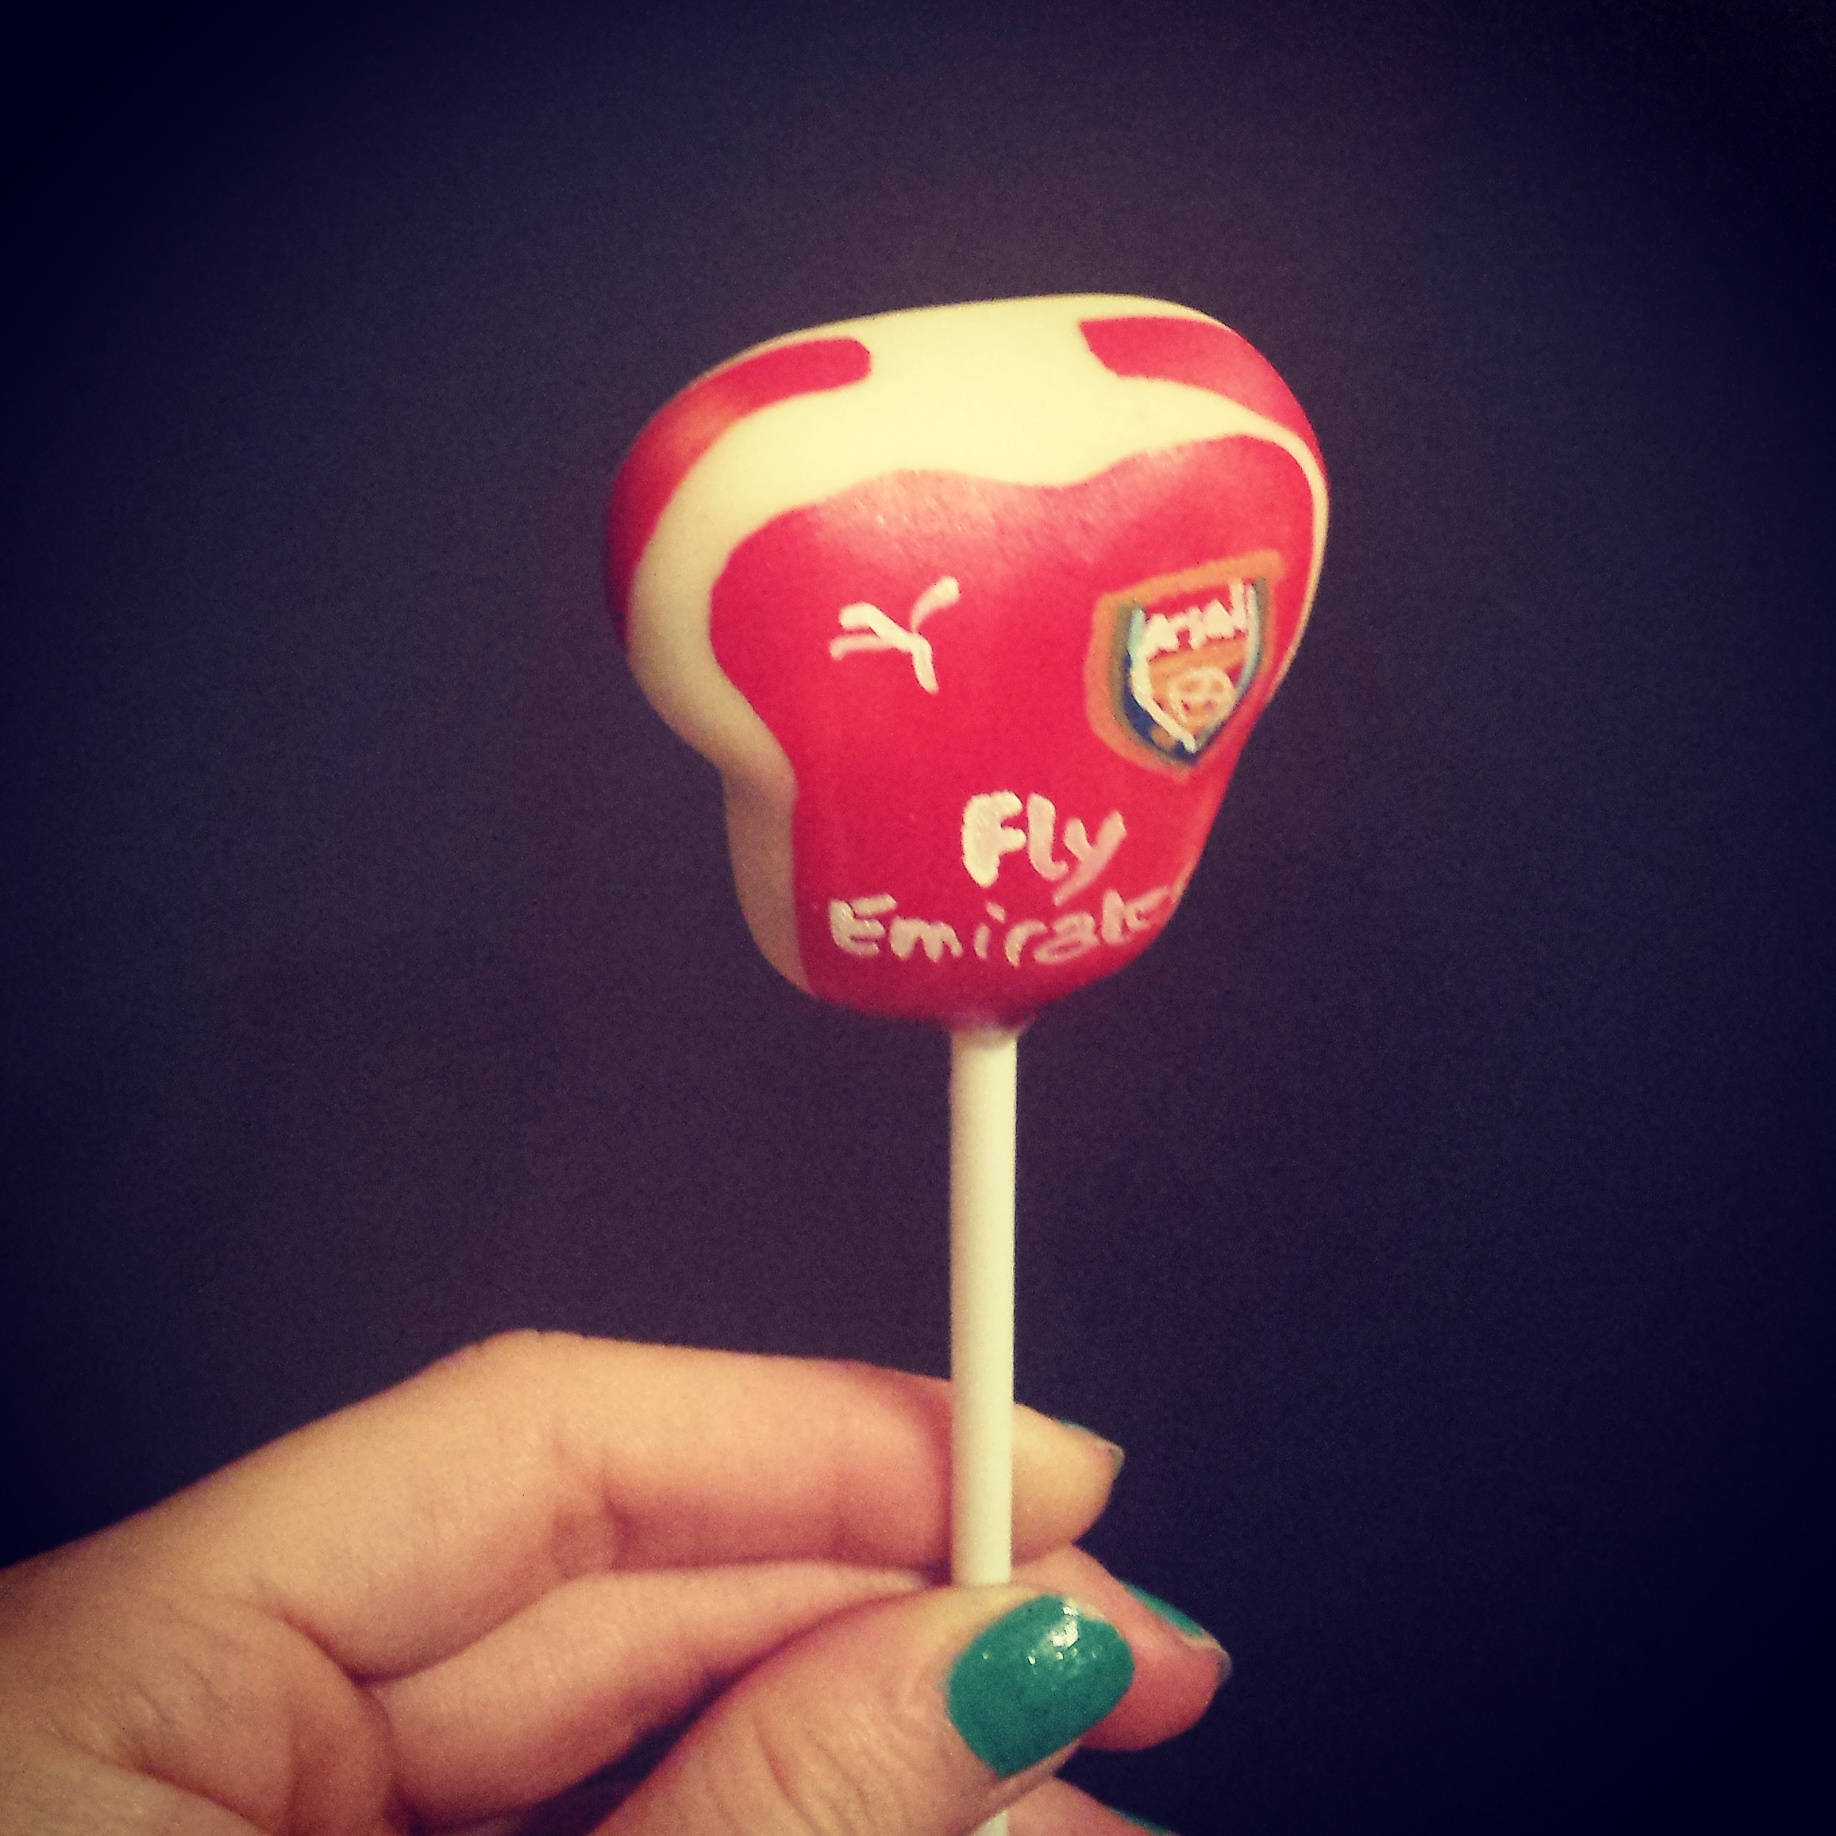 Delish Arsenal football kit cake pop